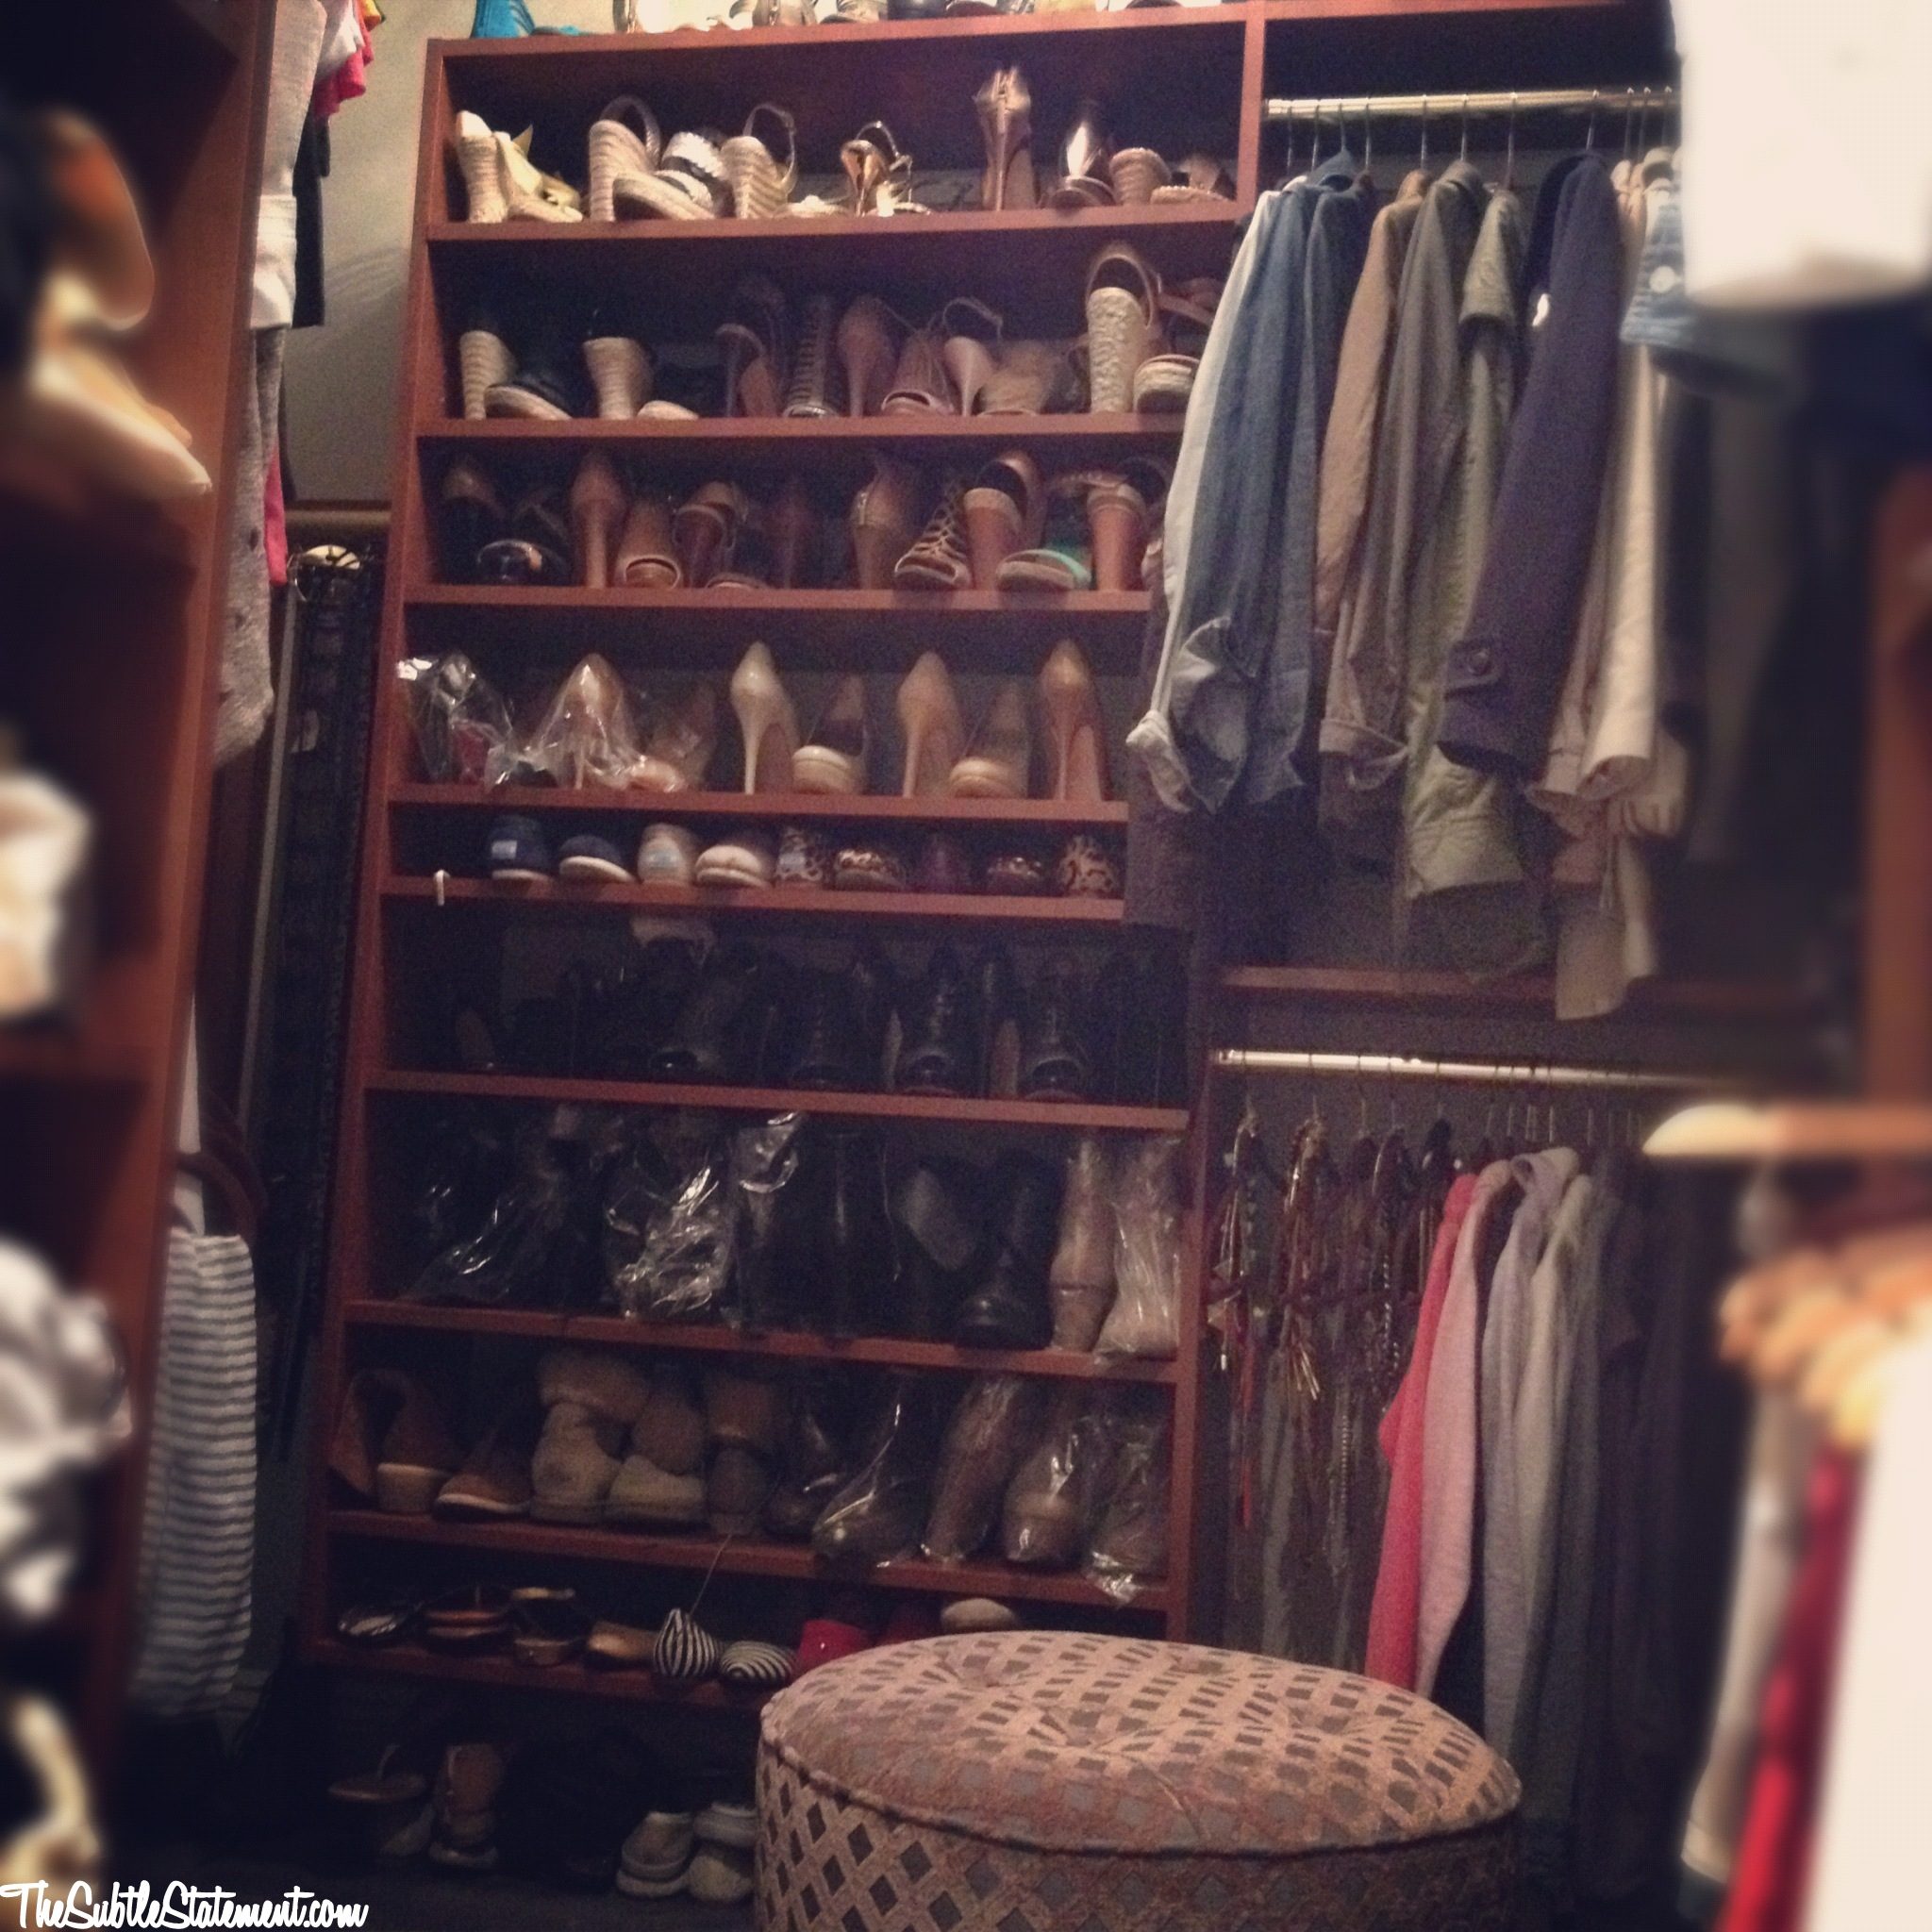 My Closet Is Divided Into Sections. Each Section Has A Category, Then A  Subcategory, And Then Organized By Color. This System Is The Most Useful To  Me, ...